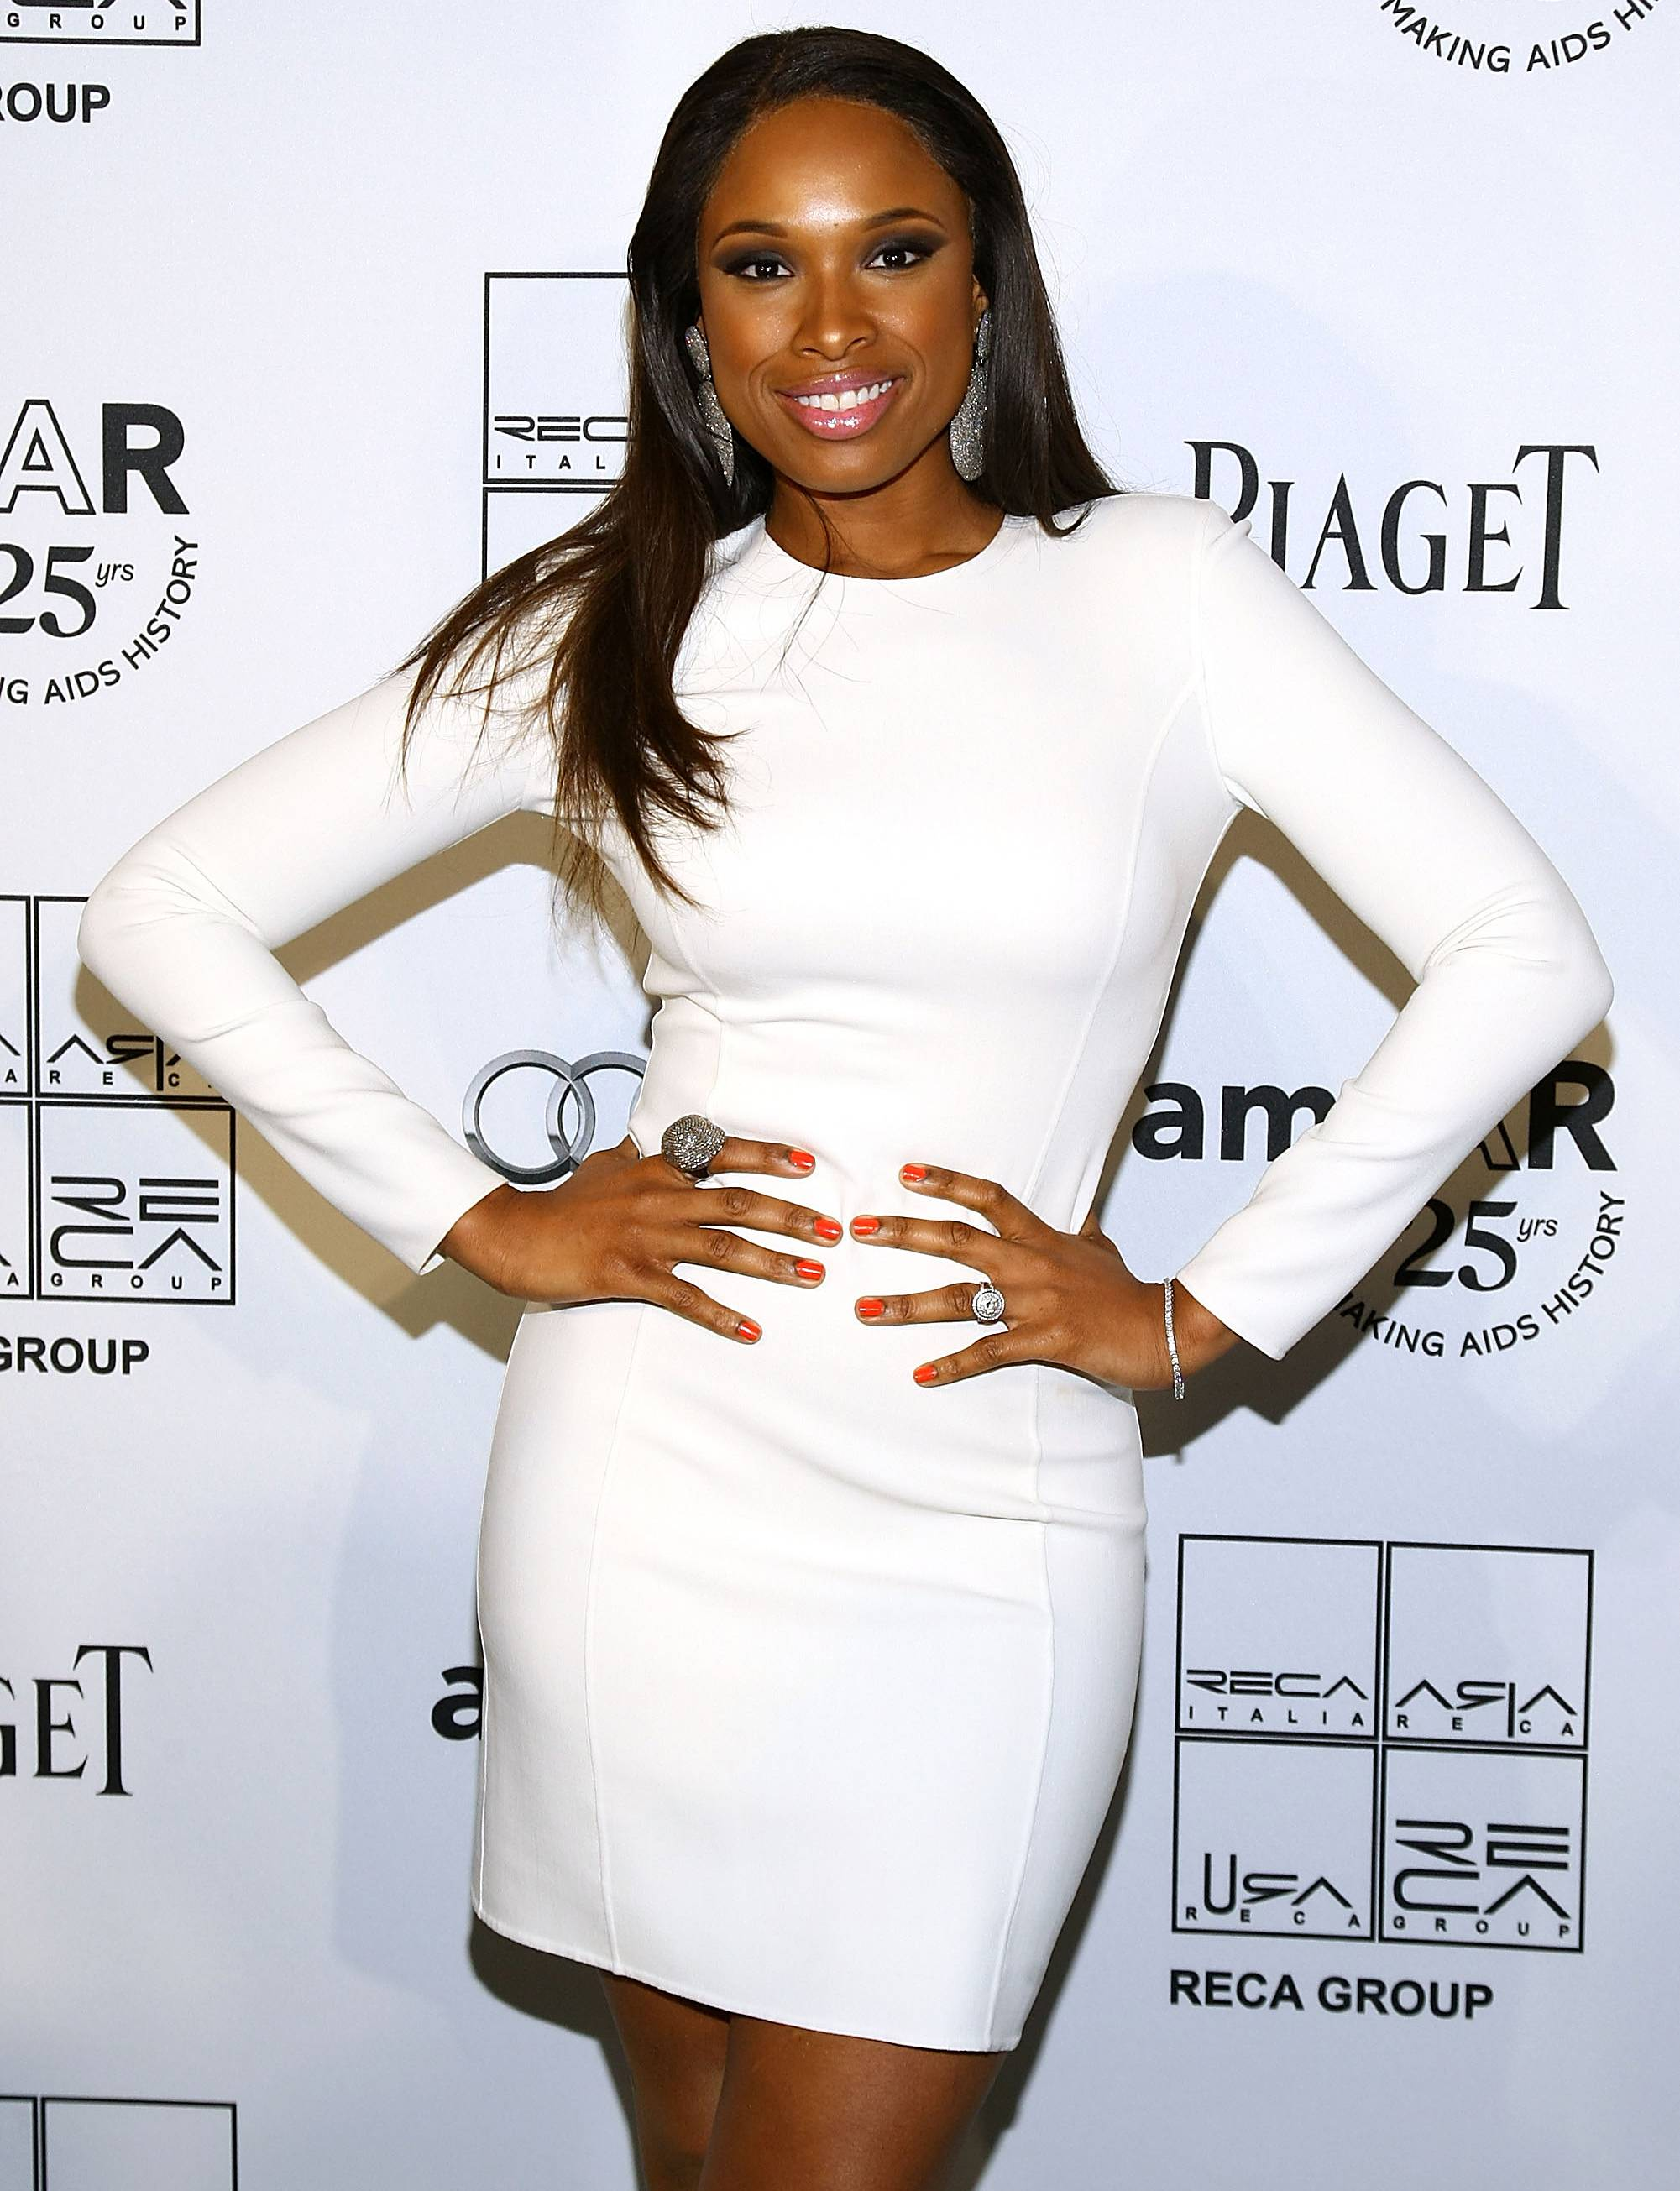 Jennifer Hudson Comes to 106 Tonight! - The talented and lovely Jennifer Hudson will be on 106 & Park tomorrow night! In anticipation of her appearance, we?ve listed the ways she makes our hearts pitter-patter. Our first reason: she?s always showing BET love.Watch Jennifer Hudson tonight on 106 & Park at 6P/5C!?Jes?s Trivi?o Alarc?n(Photo: Neilson Barnard/Getty Images)